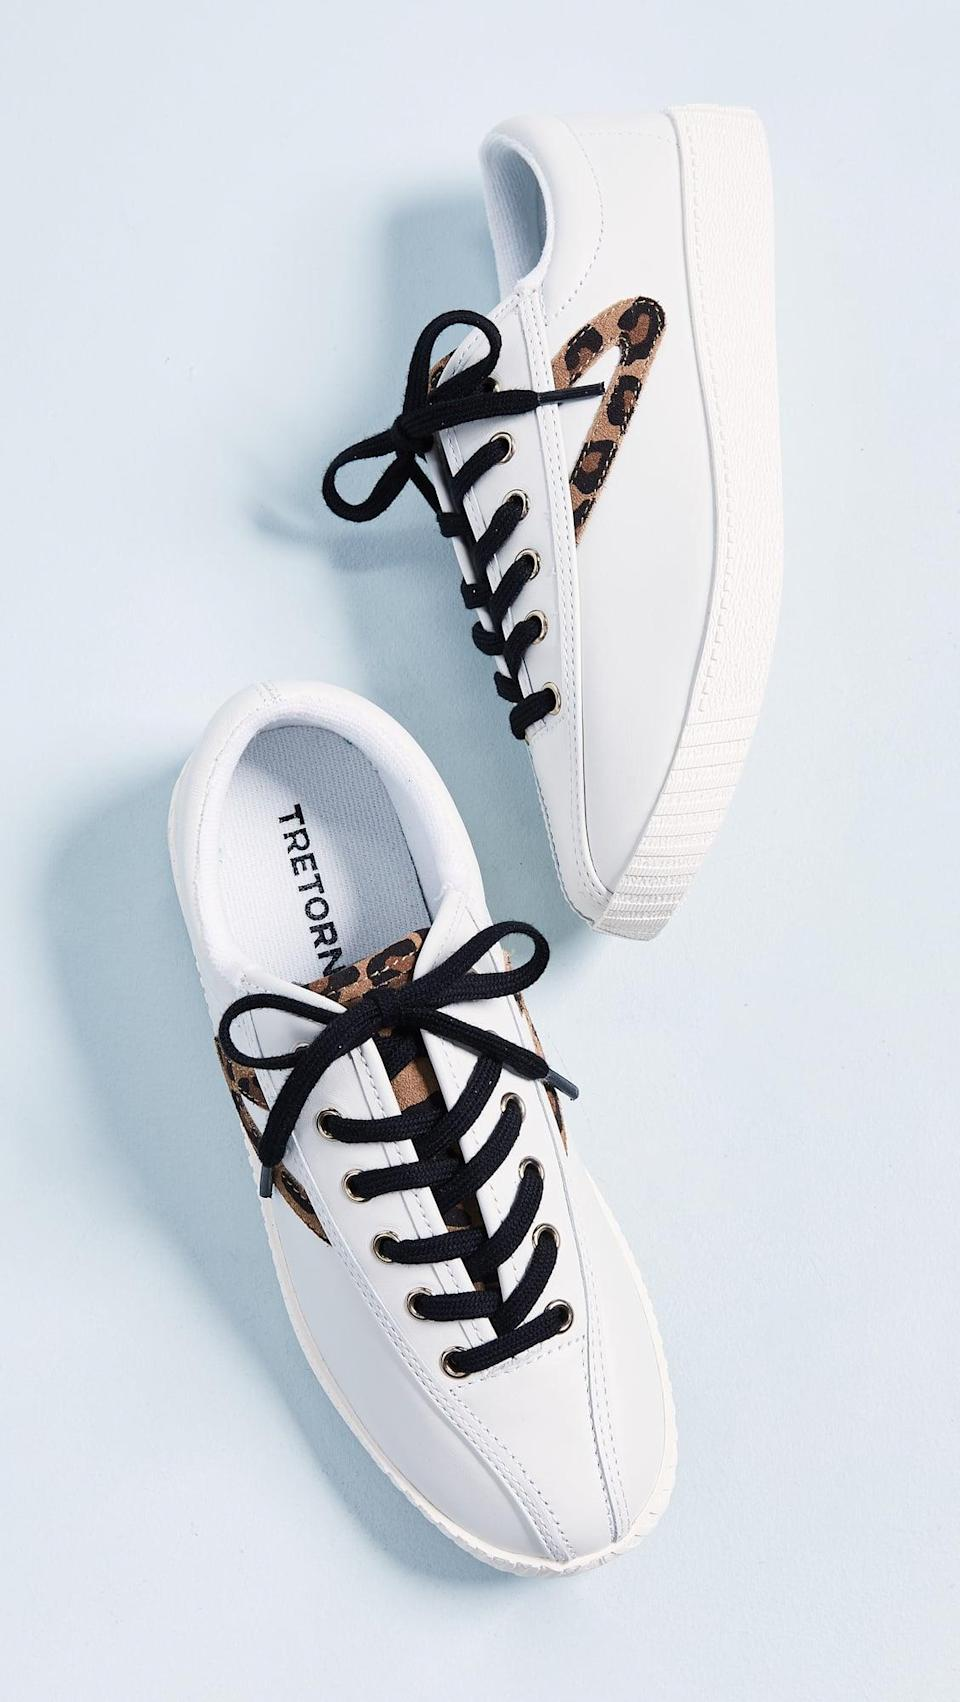 "<p>For a pop of leopard print, wear these <a href=""https://www.popsugar.com/buy/Tretorn-Nylite-25-Plus-Lace-Up-Sneakers-584513?p_name=Tretorn%20Nylite%2025%20Plus%20Lace%20Up%20Sneakers&retailer=shopbop.com&pid=584513&price=85&evar1=fab%3Aus&evar9=47571677&evar98=https%3A%2F%2Fwww.popsugar.com%2Ffashion%2Fphoto-gallery%2F47571677%2Fimage%2F47571942%2FTretorn-Nylite-25-Plus-Lace-Up-Sneakers&list1=shopping%2Cshoes%2Csneakers%2Csummer%2Csummer%20fashion%2Cfashion%20shopping&prop13=mobile&pdata=1"" rel=""nofollow noopener"" class=""link rapid-noclick-resp"" target=""_blank"" data-ylk=""slk:Tretorn Nylite 25 Plus Lace Up Sneakers"">Tretorn Nylite 25 Plus Lace Up Sneakers </a> ($85).</p>"